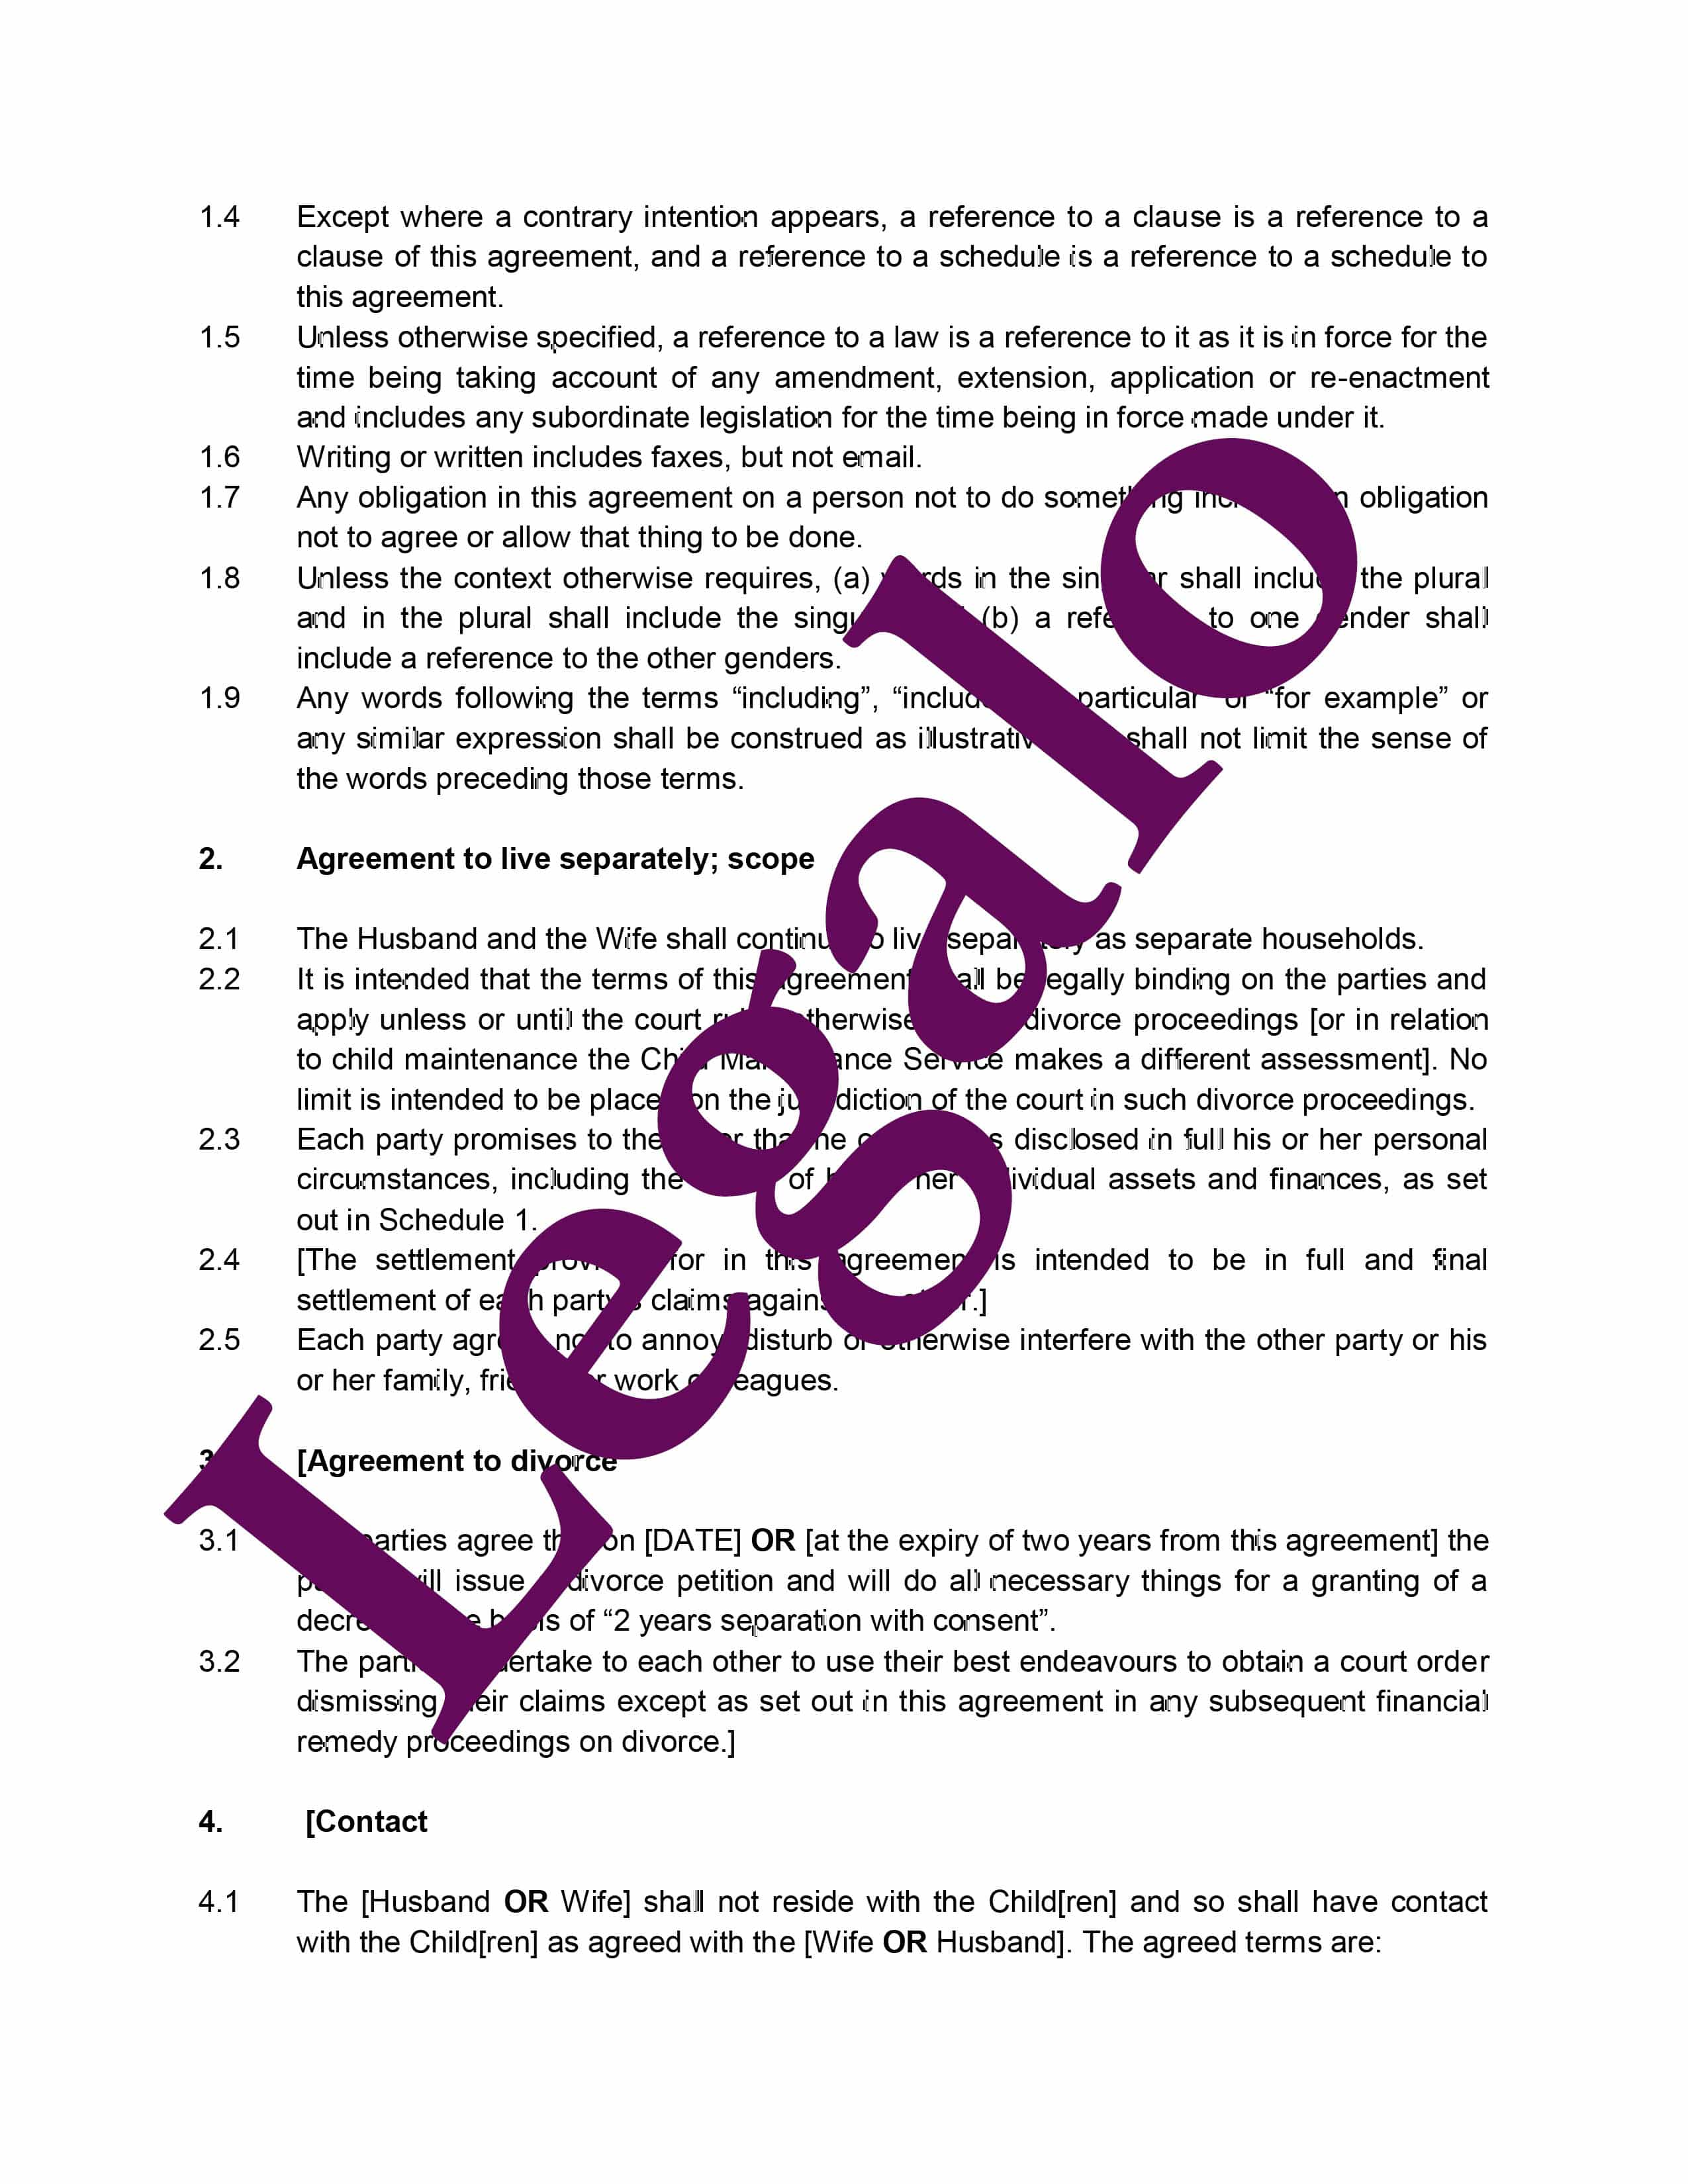 Separation agreement preview image page 2